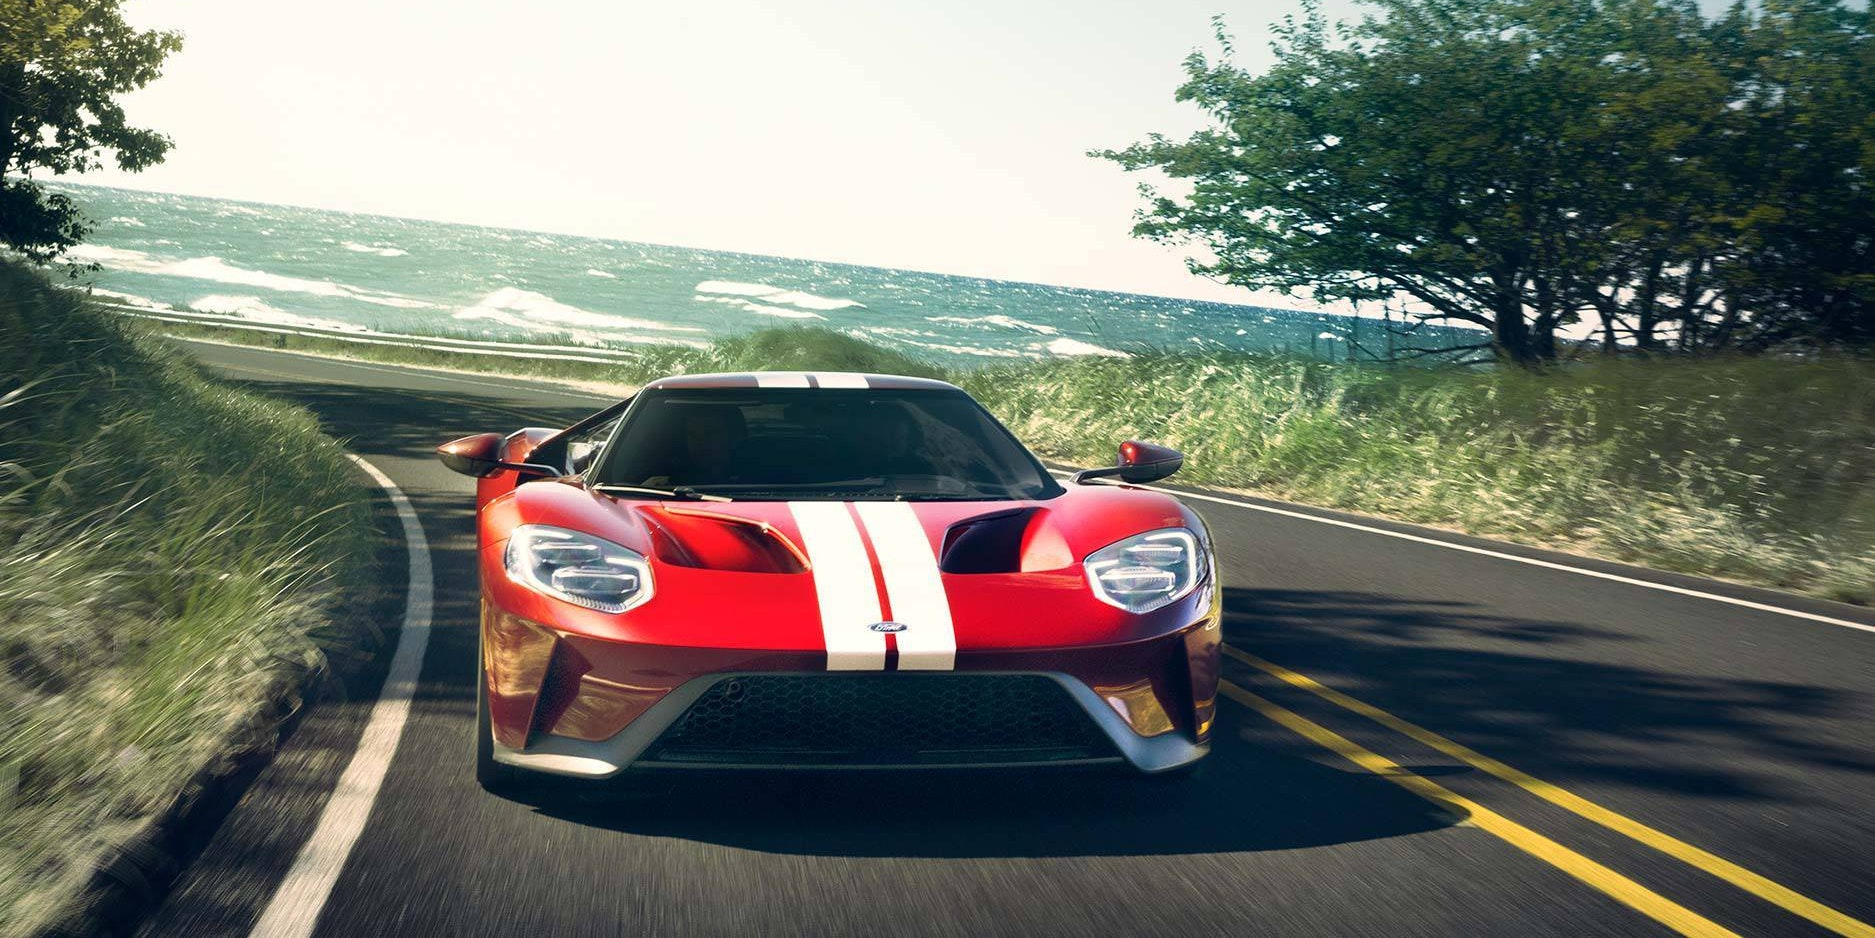 Aerodynamic Physics And A Monster Engine Make Ford Gt The Fastest Ever